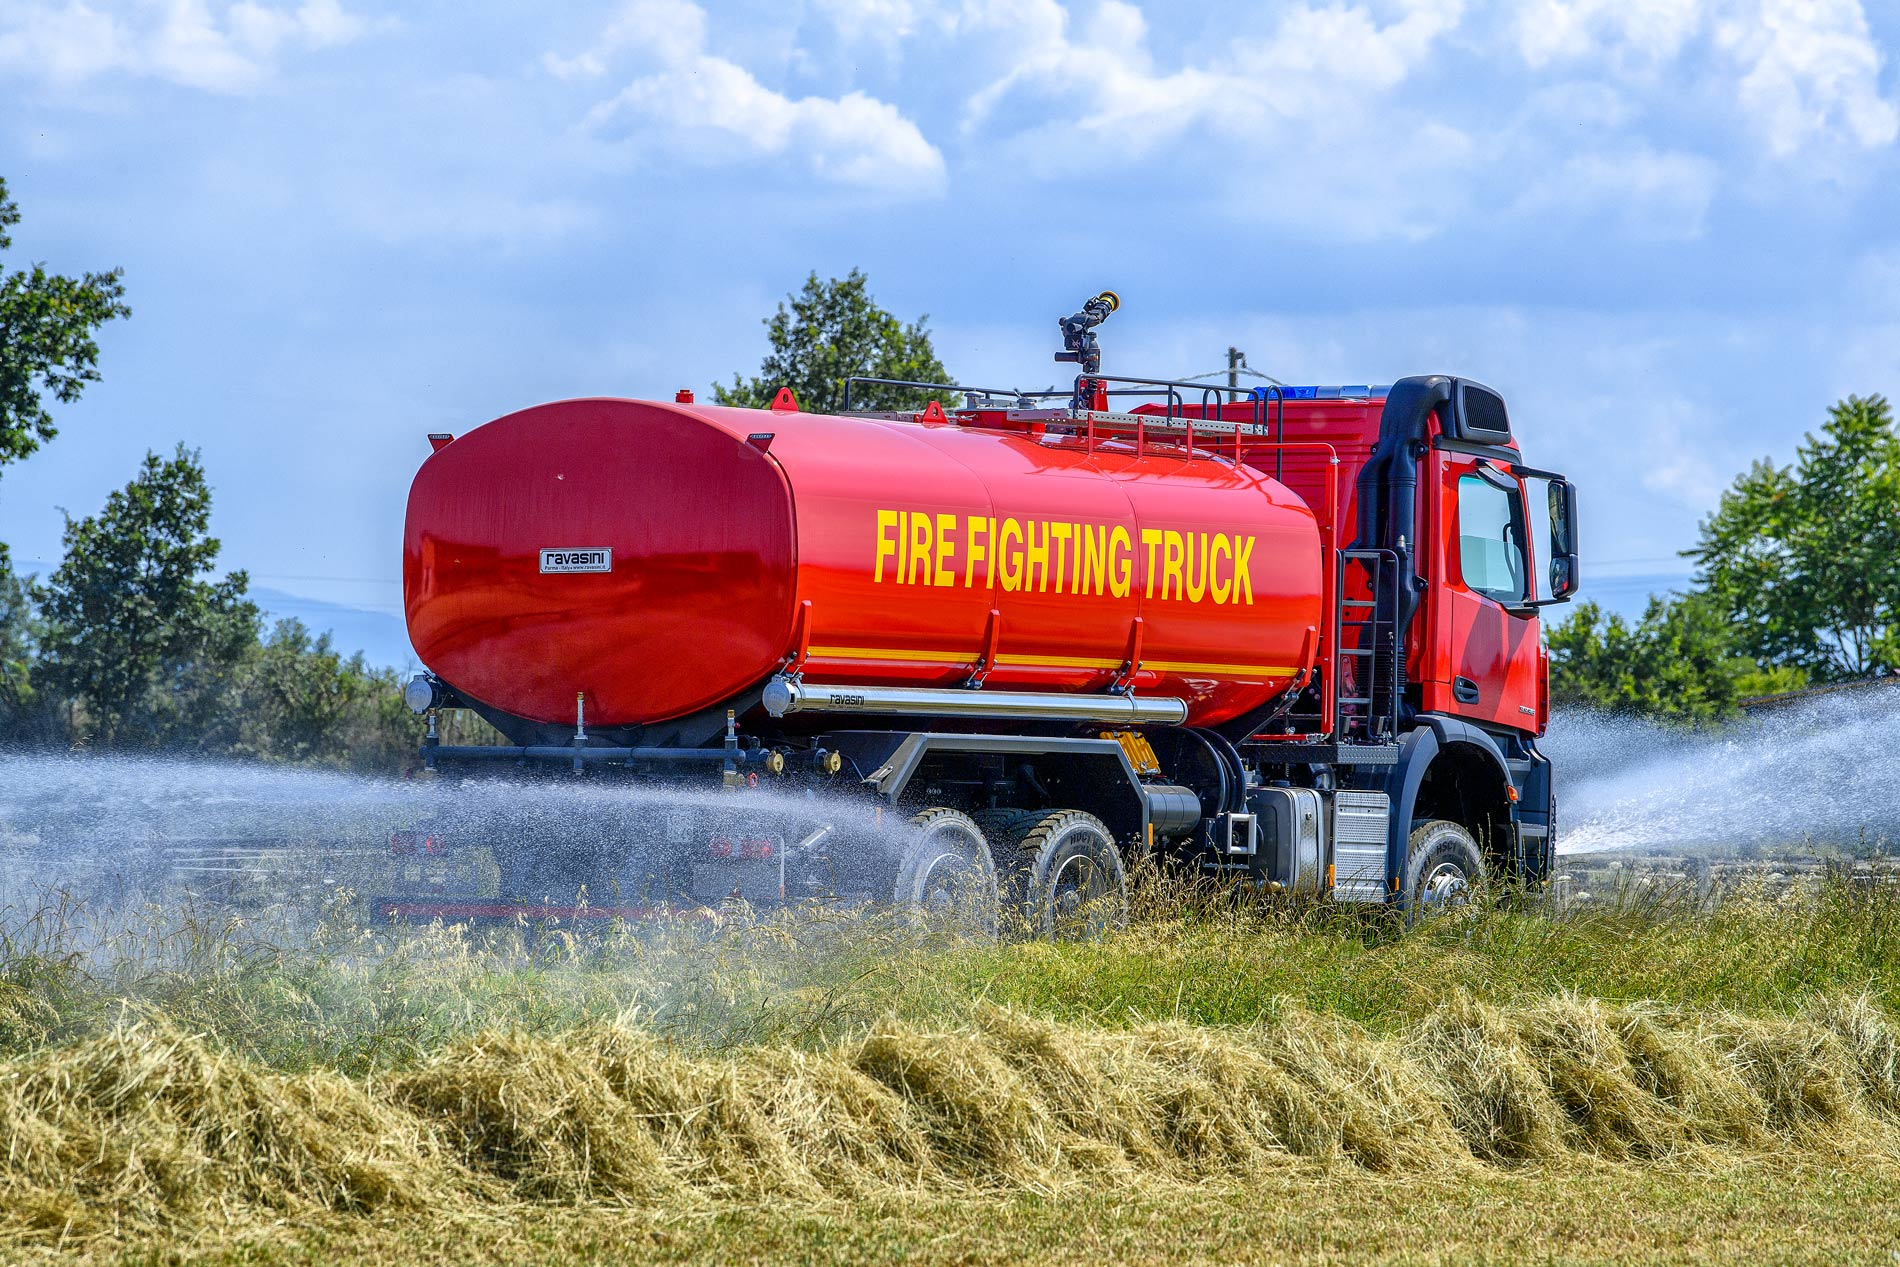 Ravasini_fire_fighting_tank_truck